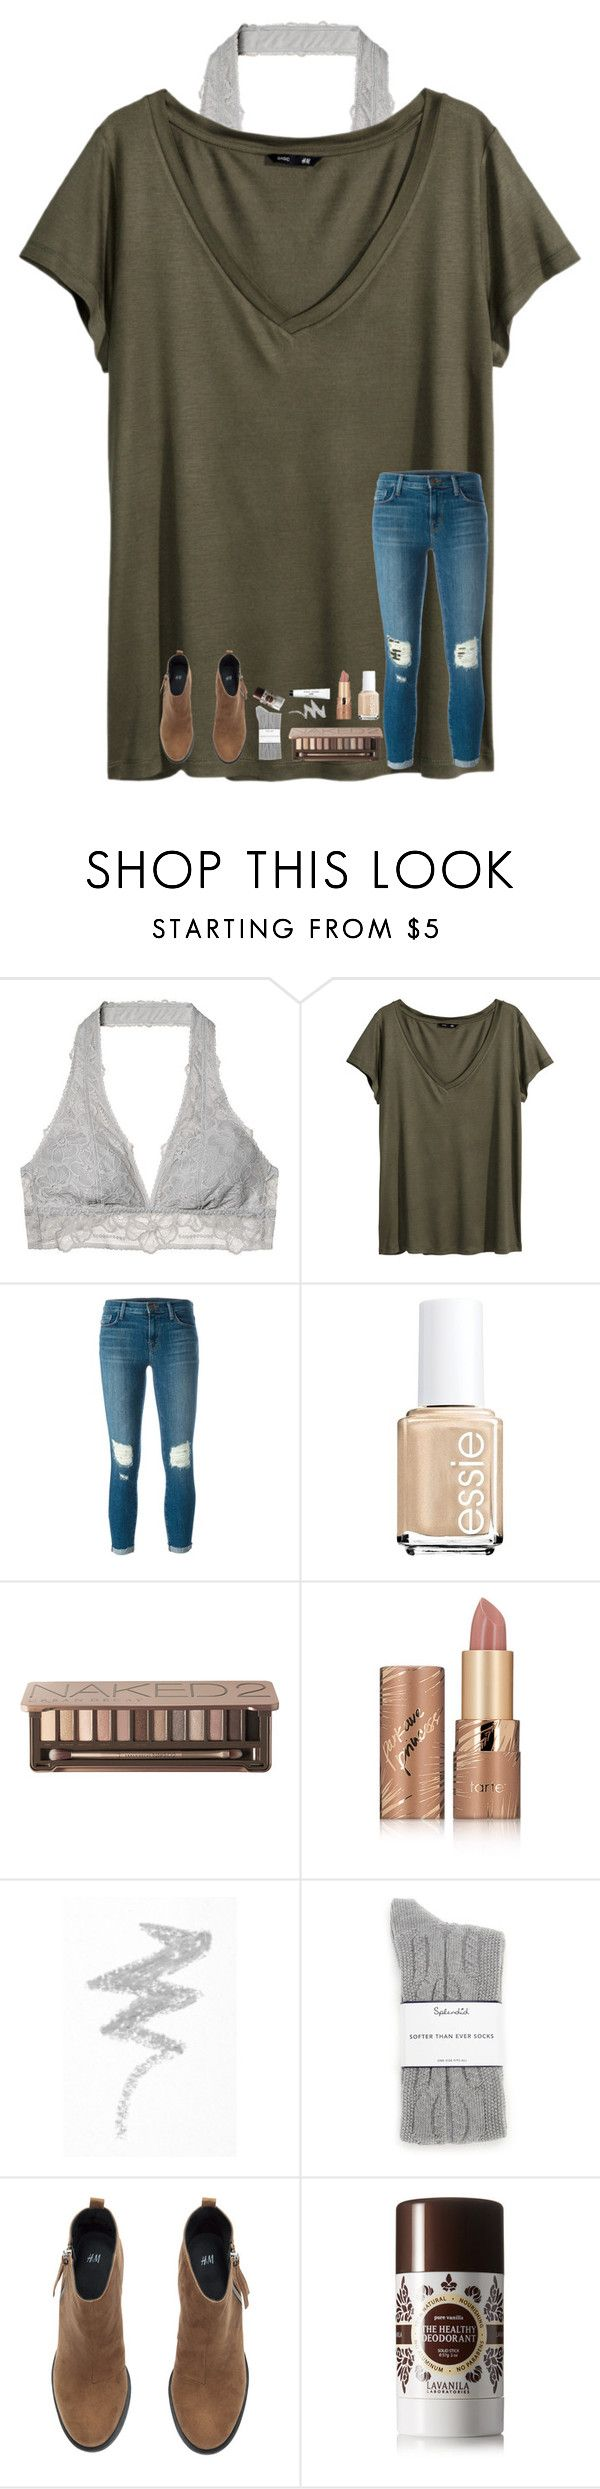 """Thanksgiving Break in 2 days!!! Cali here i come!!!"" by kat-attack ❤ liked on Polyvore featuring Victoria's Secret, H&M, J Brand, Essie, Urban Decay, tarte, NYX, Splendid, Lavanila and Bobbi Brown Cosmetics"